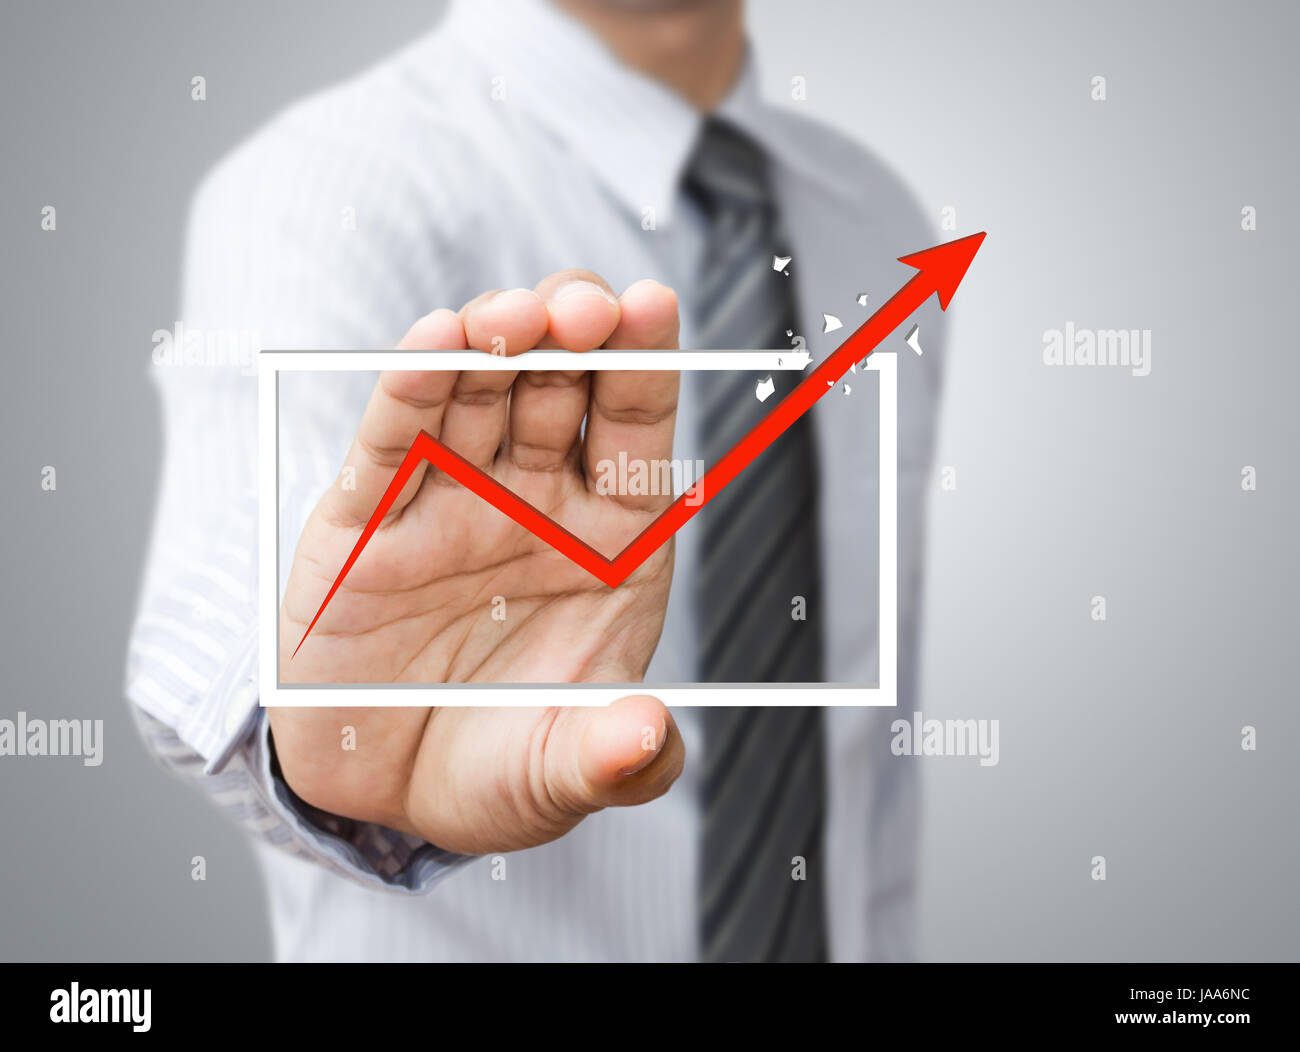 Hand holding a rising arrow, representing business growth. - Stock Image